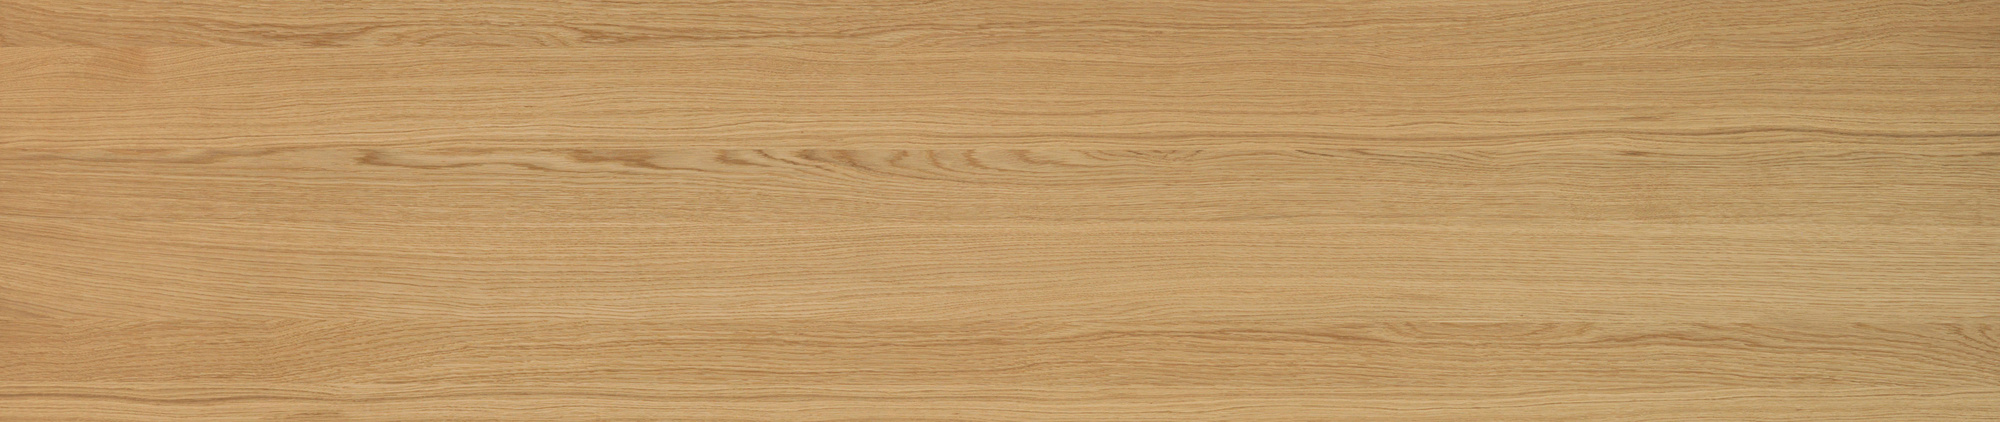 Astrata - Oak Natural Allegro - planks